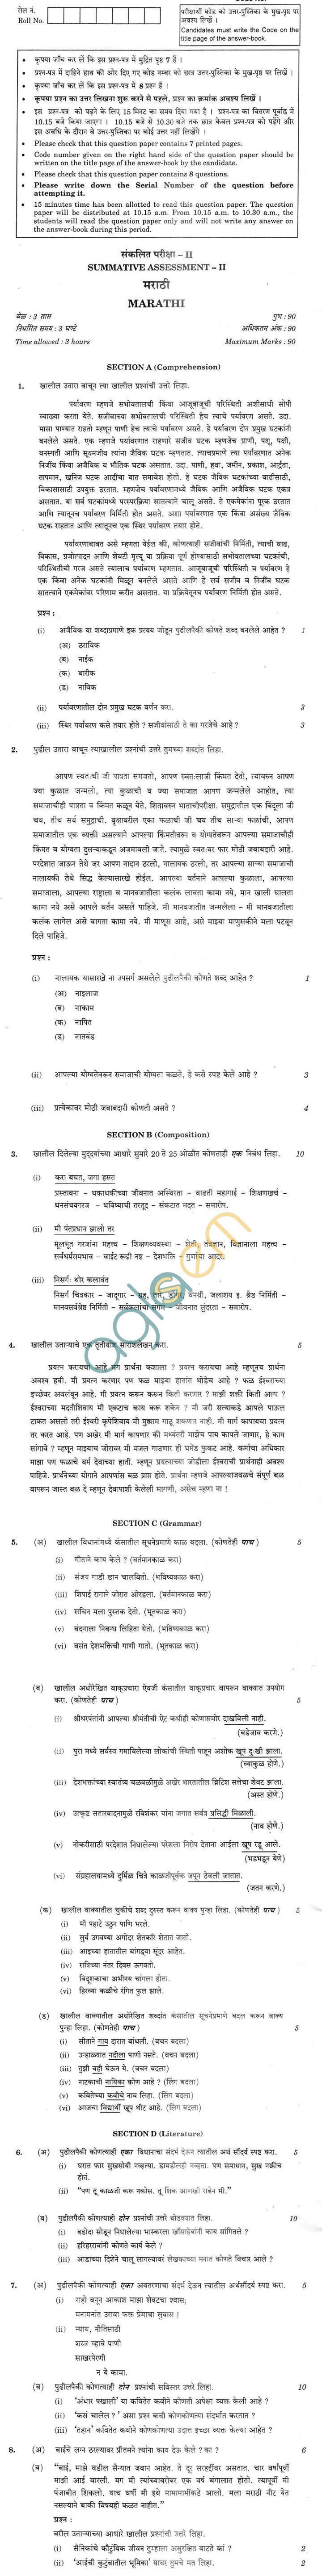 CBSE Compartment Exam 2013 Class X Question Paper - Marathi